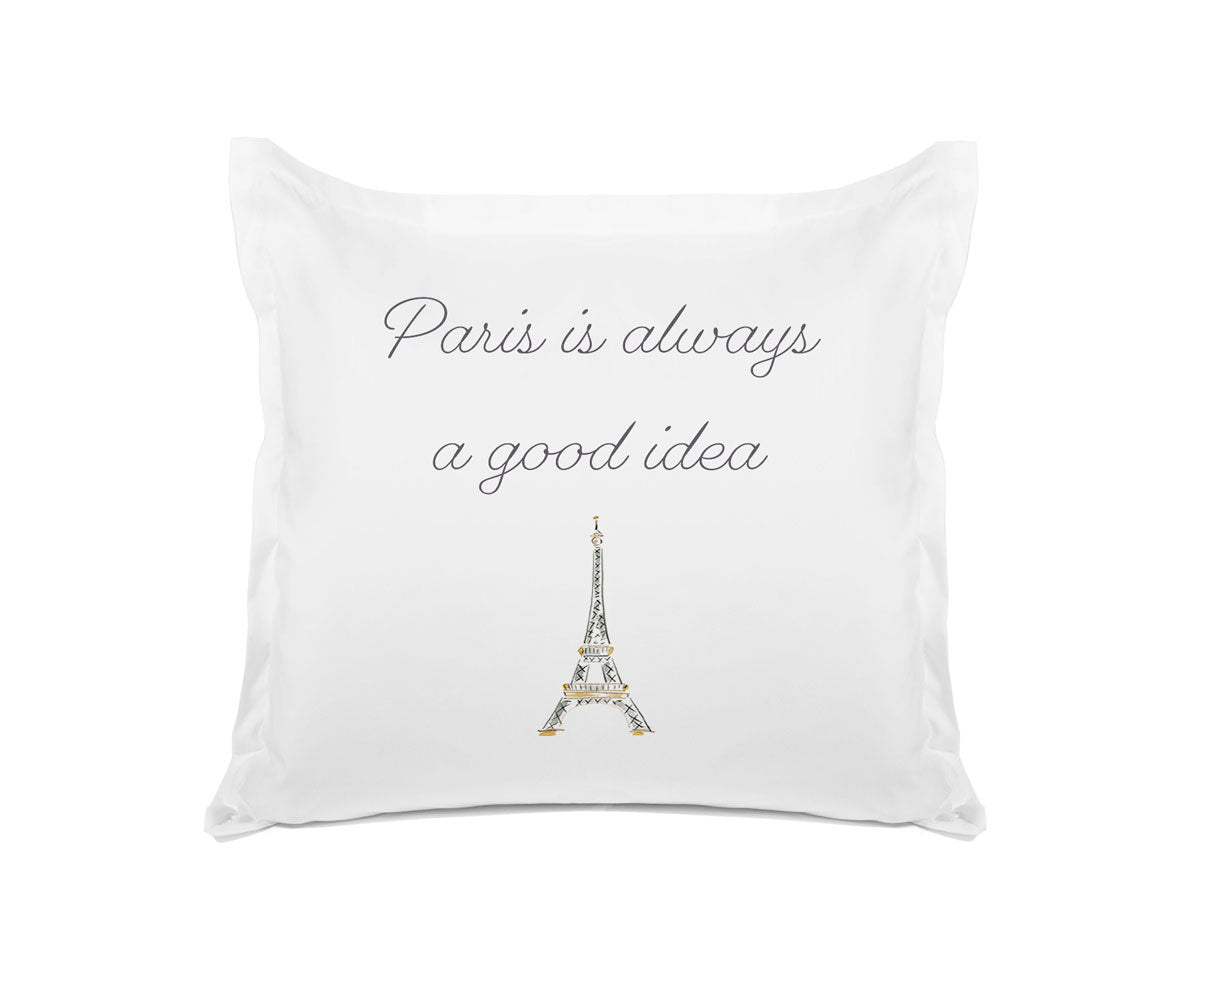 Paris Is Always A Good Idea Pillow Cases Quote Pillows Di Lewis